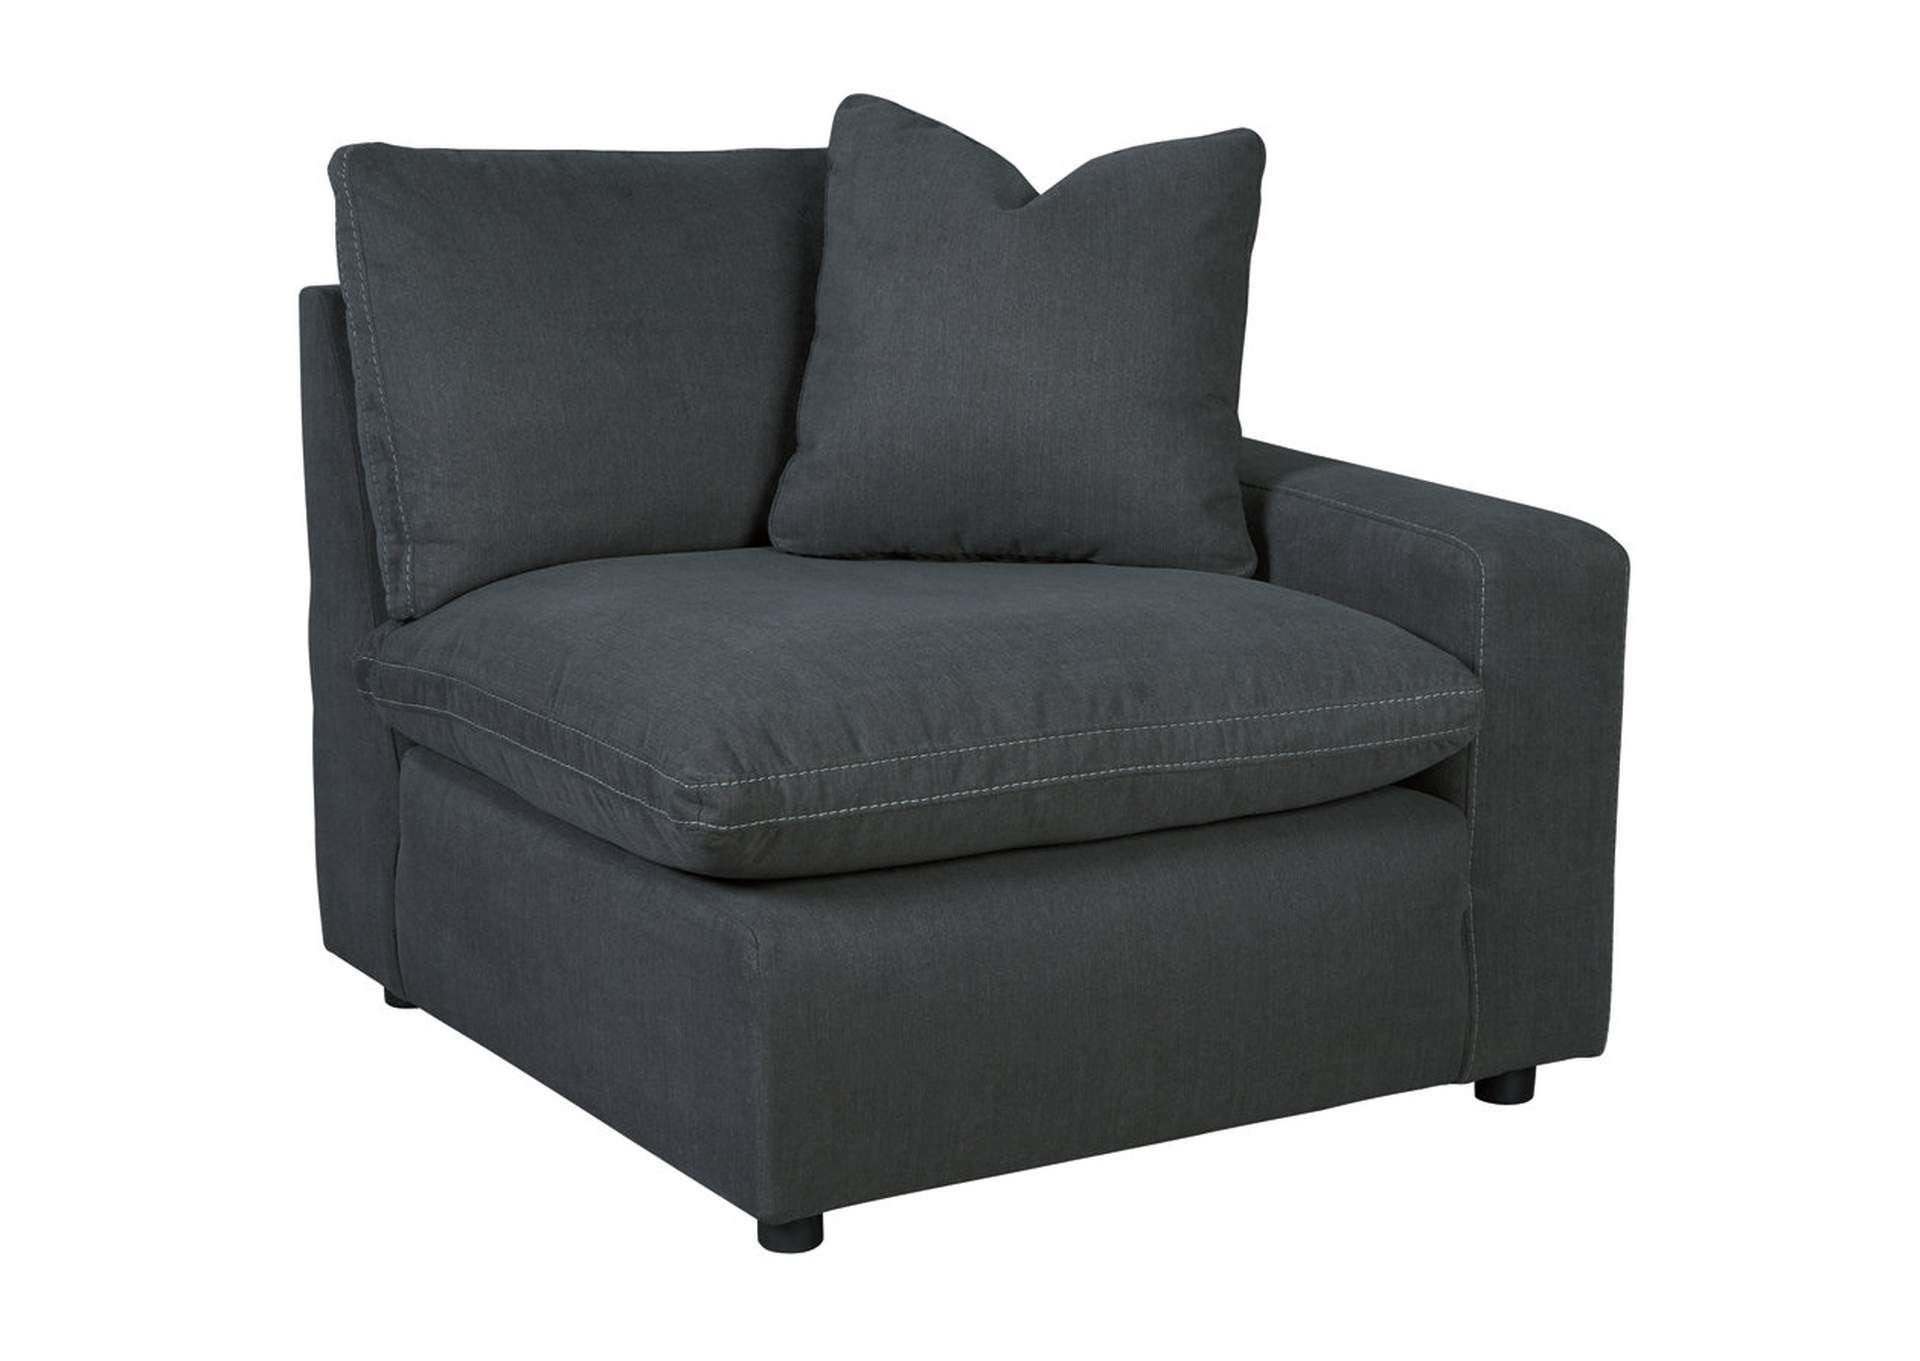 Bedroom Sofa Savesto Charcoal Raf Corner Chair